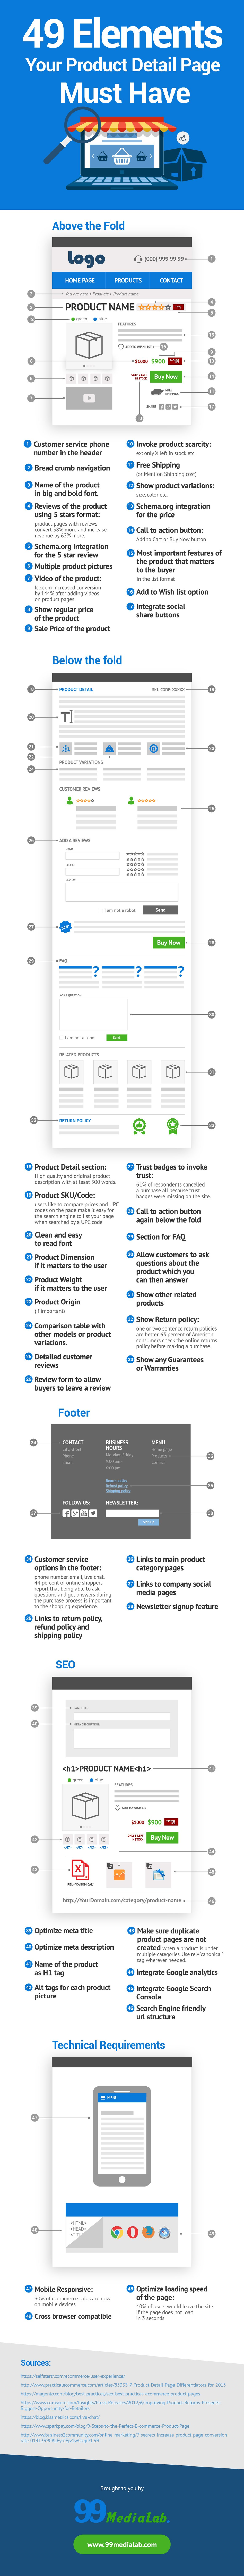 49 tips to create a successful e-commerce product page